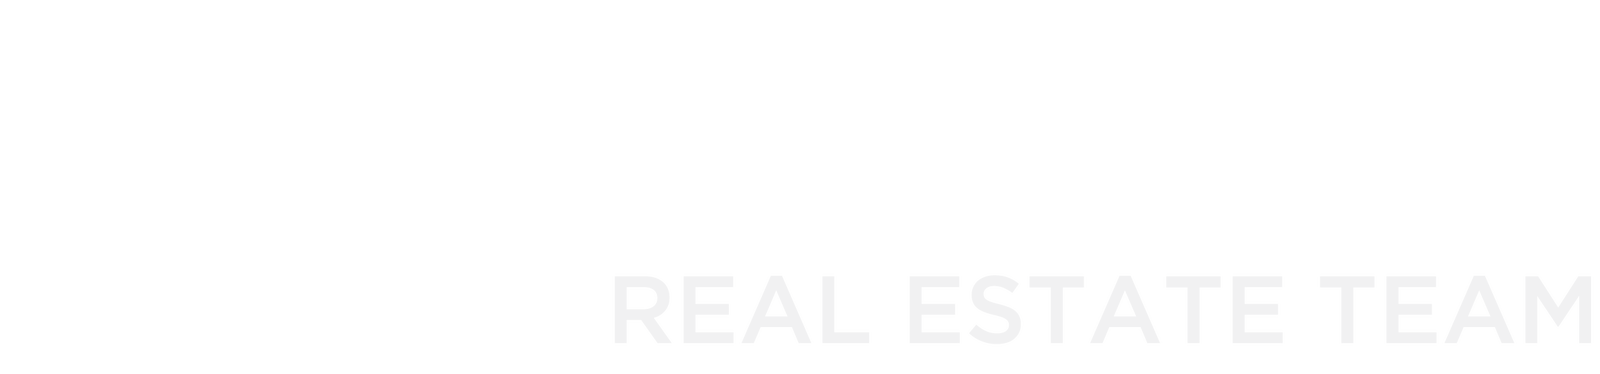 PLACE Real Estate Team - Logo